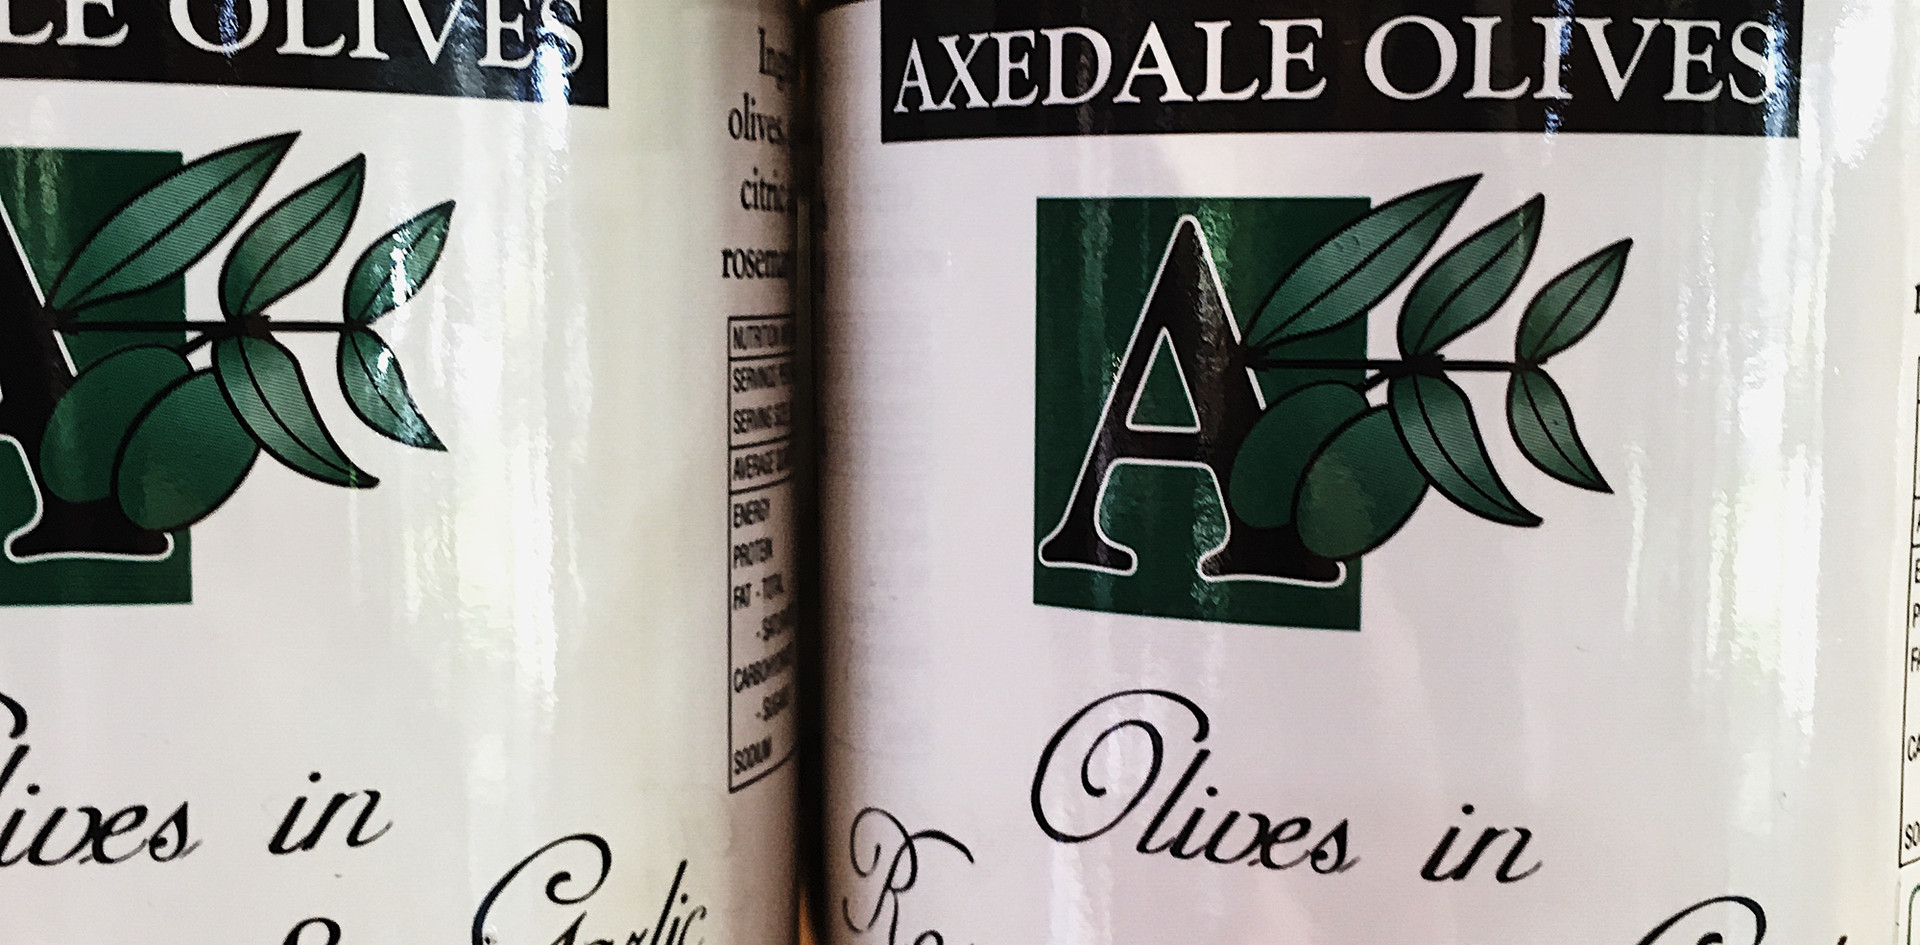 Axedale olives